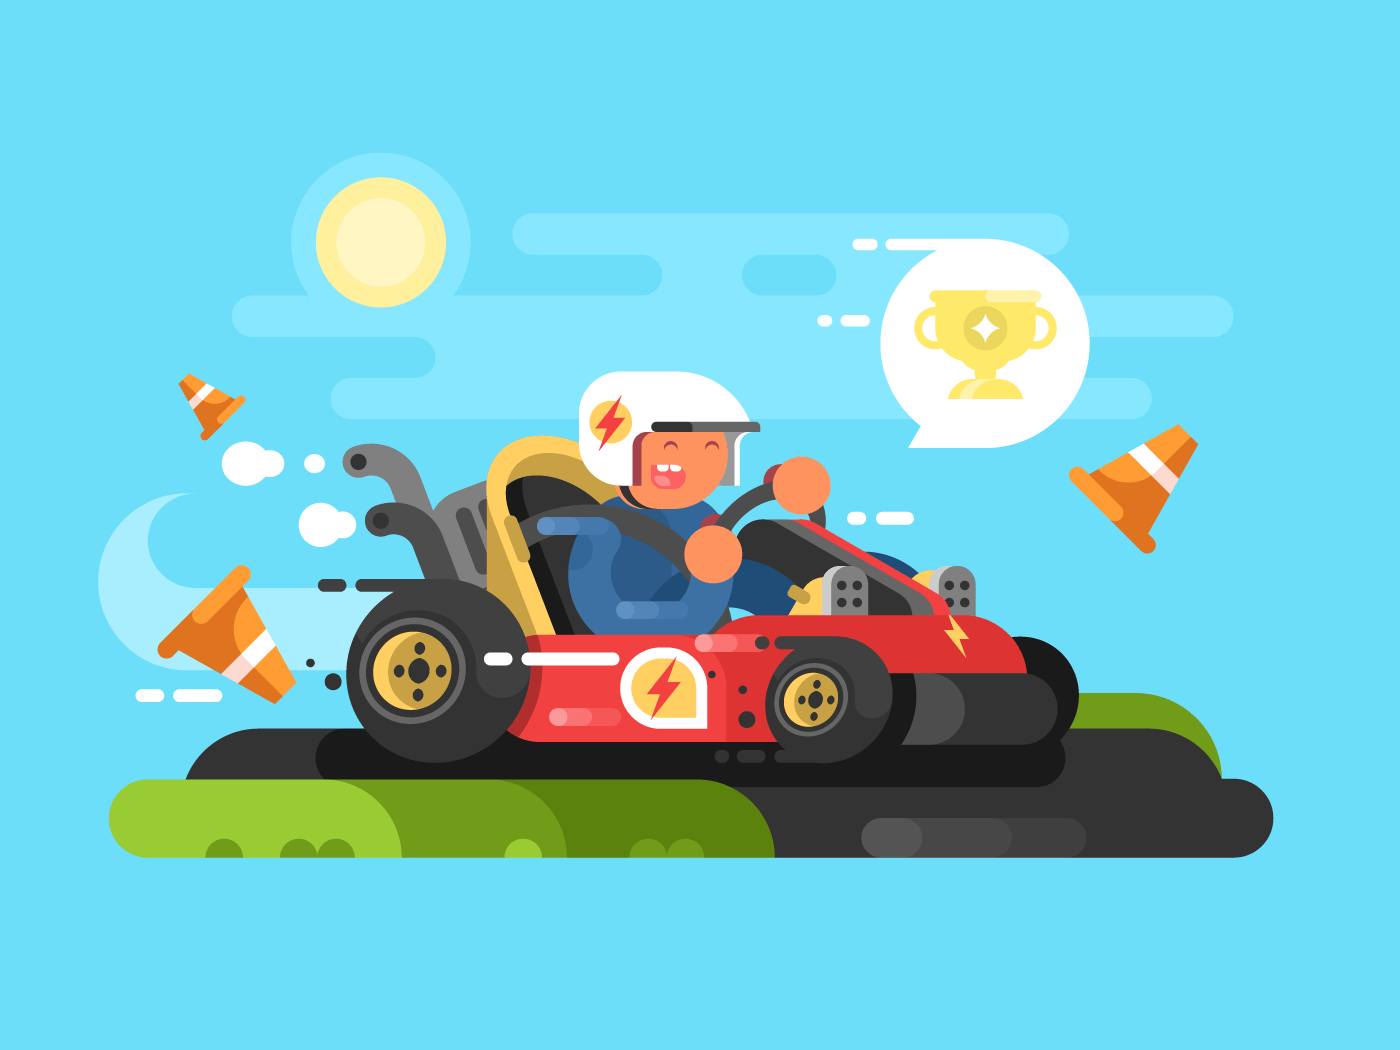 Riding a karting flat vector illustration